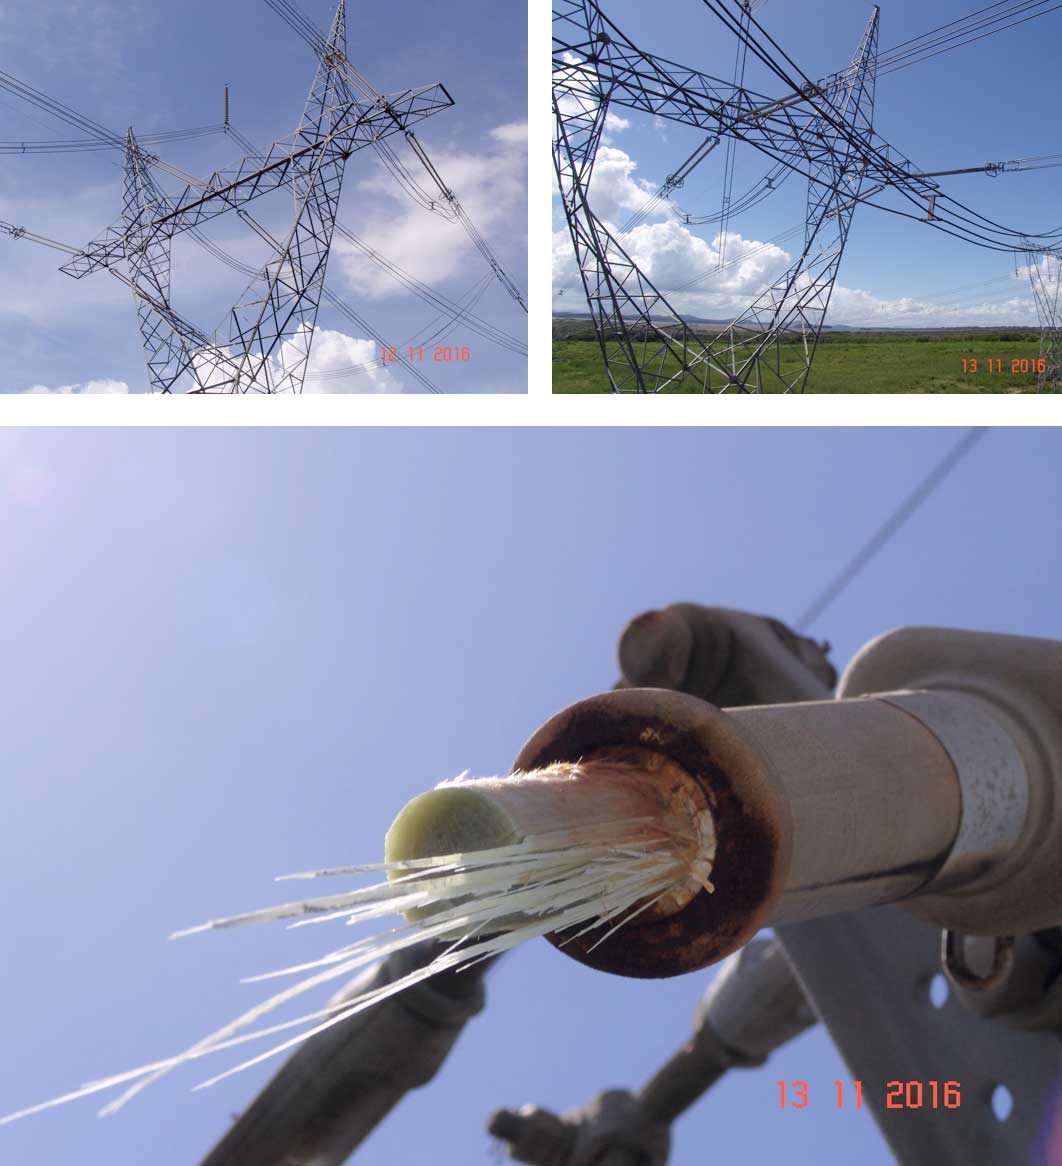 Lessons & Questions from Brittle Fracture of 400 kV Composite Insulator Brittle Fracture of 400 kV Composite Insulator